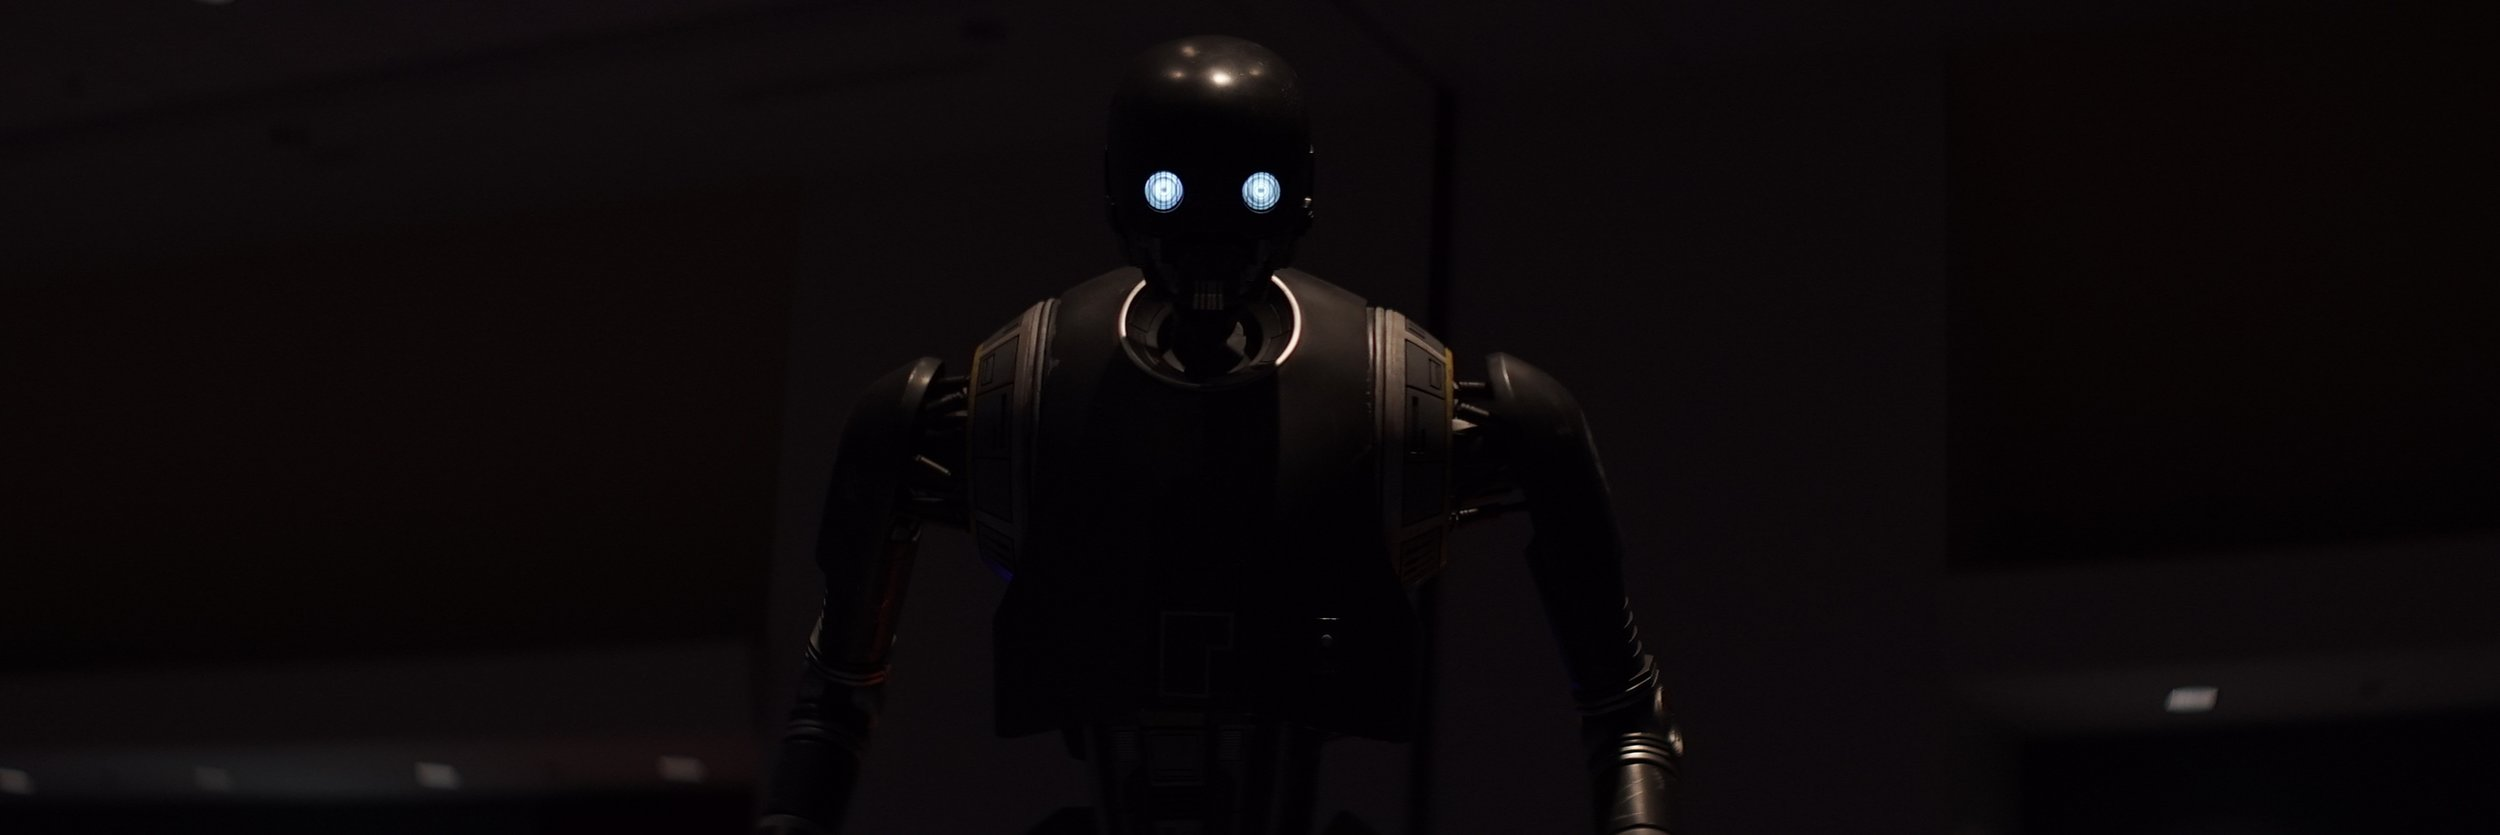 Lomo 75mm Anamorphic Lens | Star Wars Celebration Chicago - SWCC | K-2SO in the Droid Builders room. I loved keeping this image very dark. - Photo by: Keith Nickoson